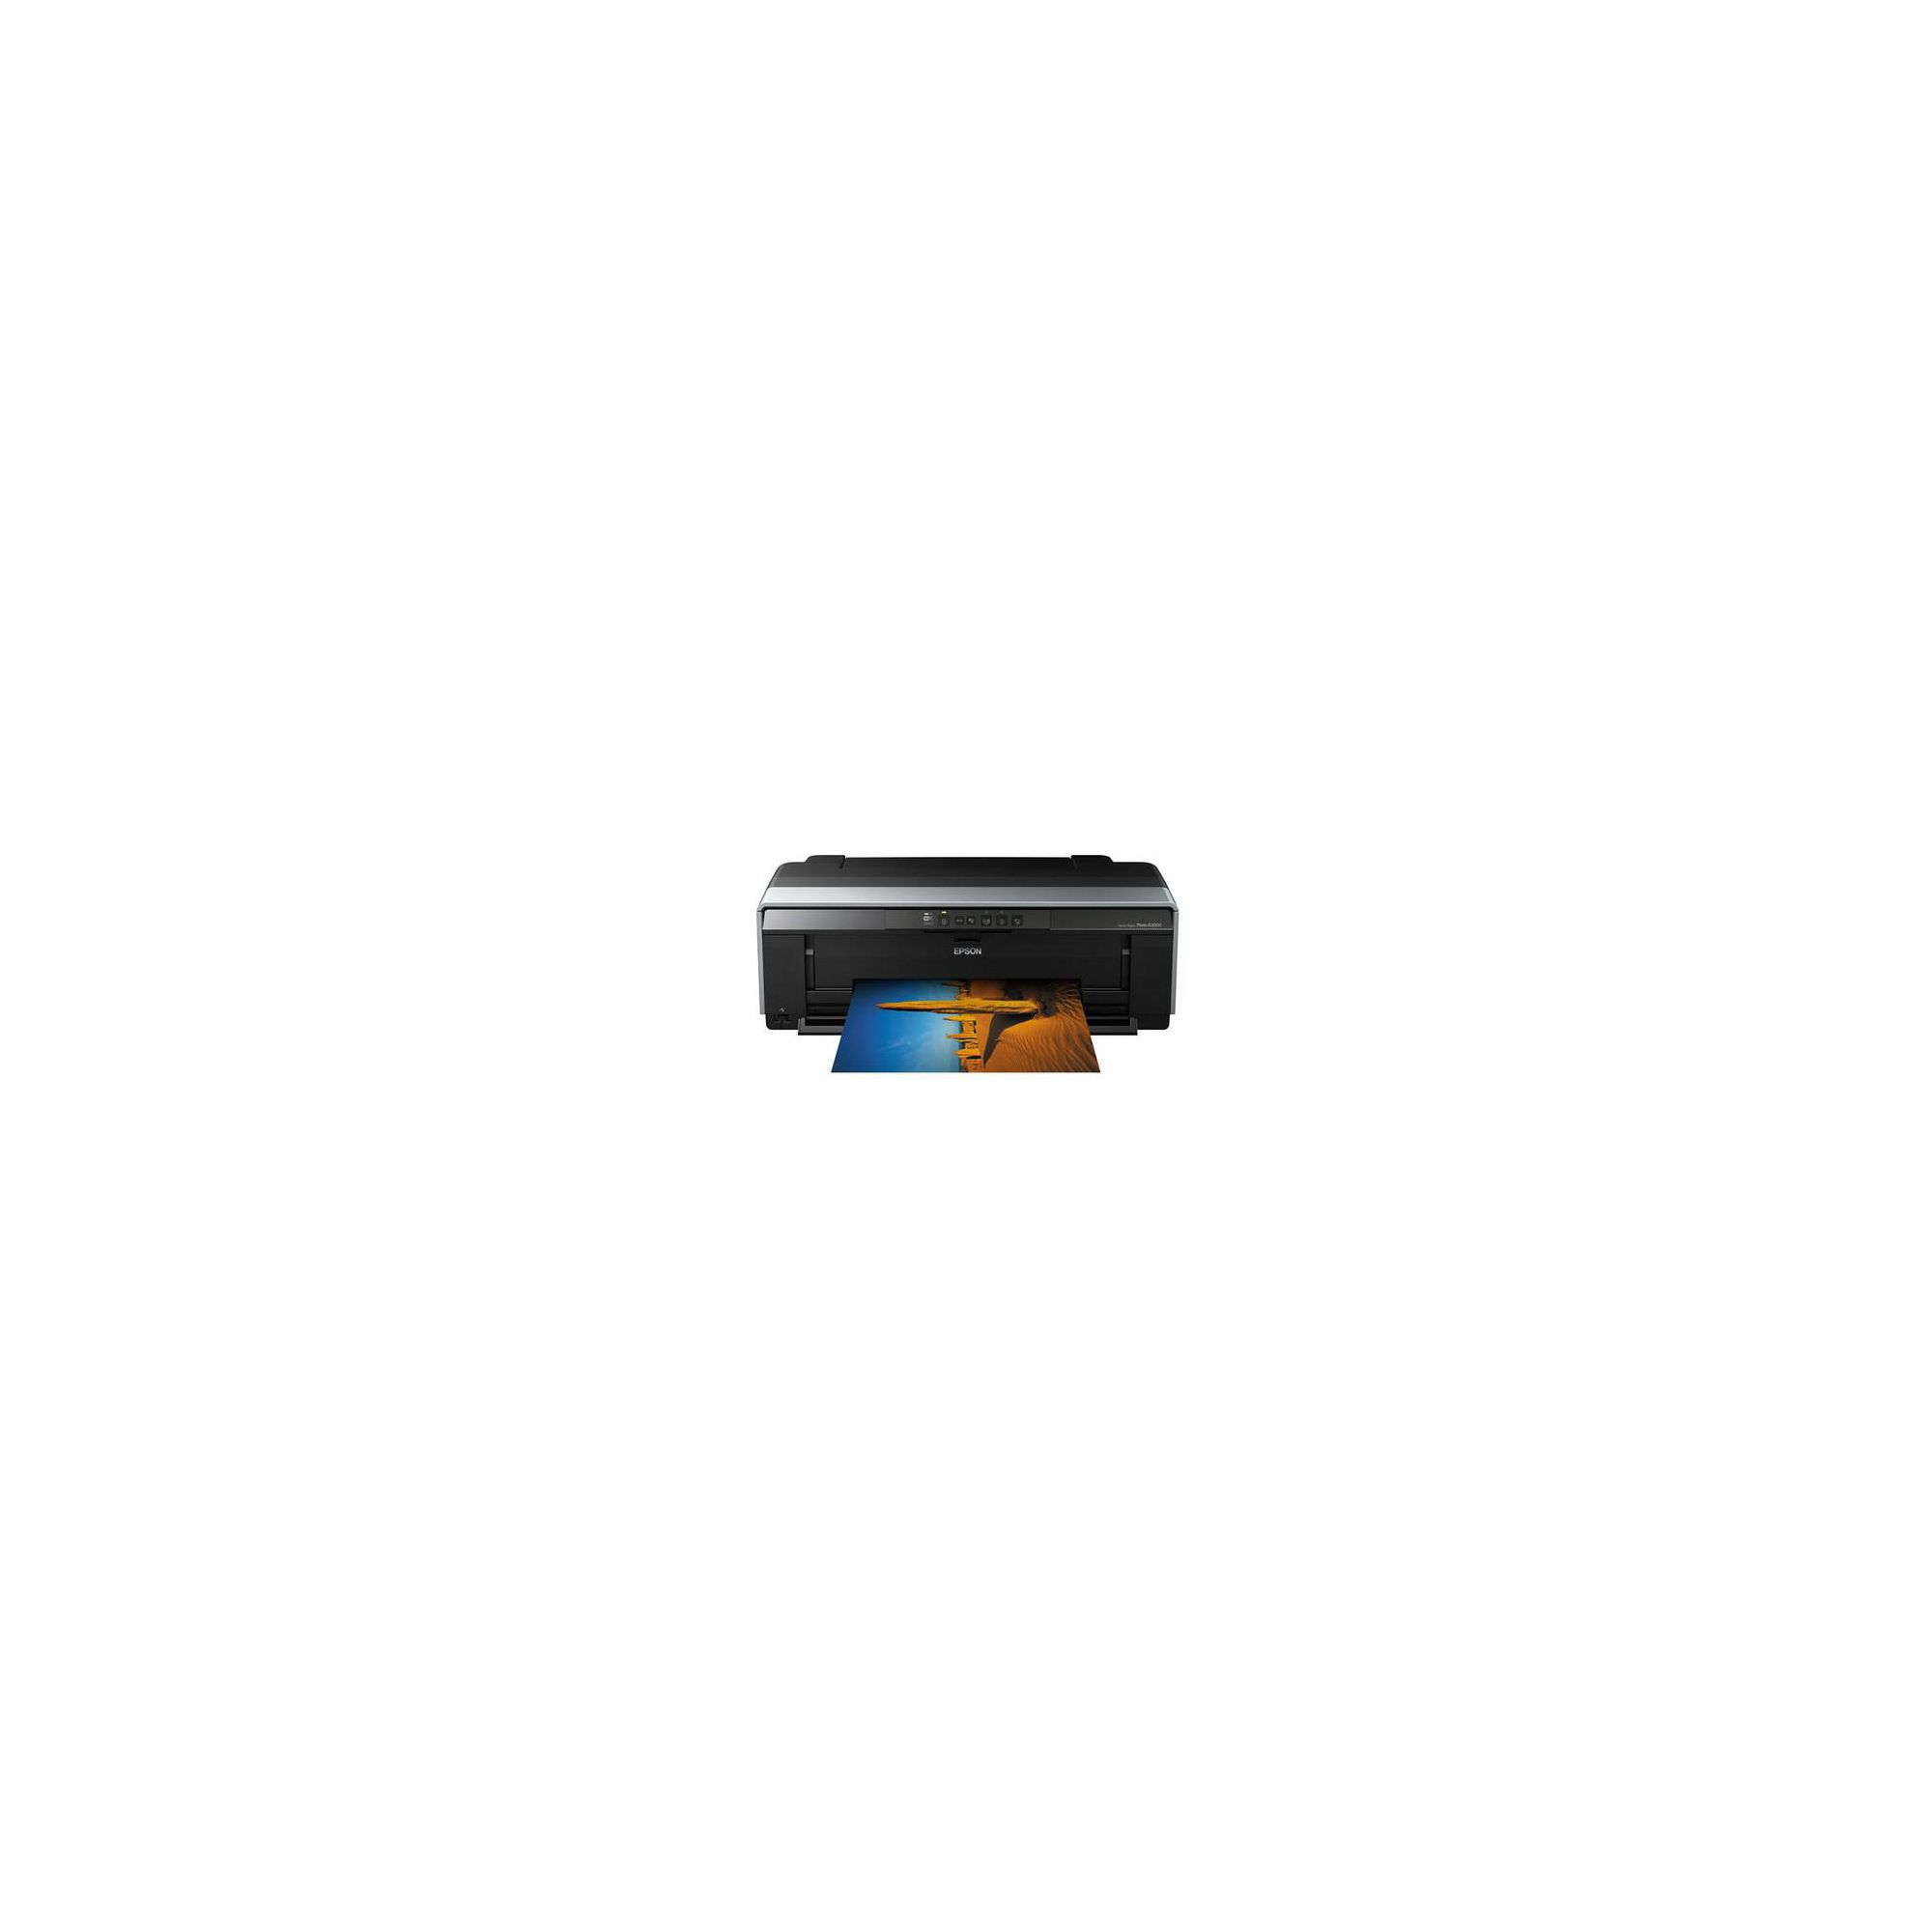 Epson Stylus Photo R2000 A3+ Photo Printer at Tescos Direct